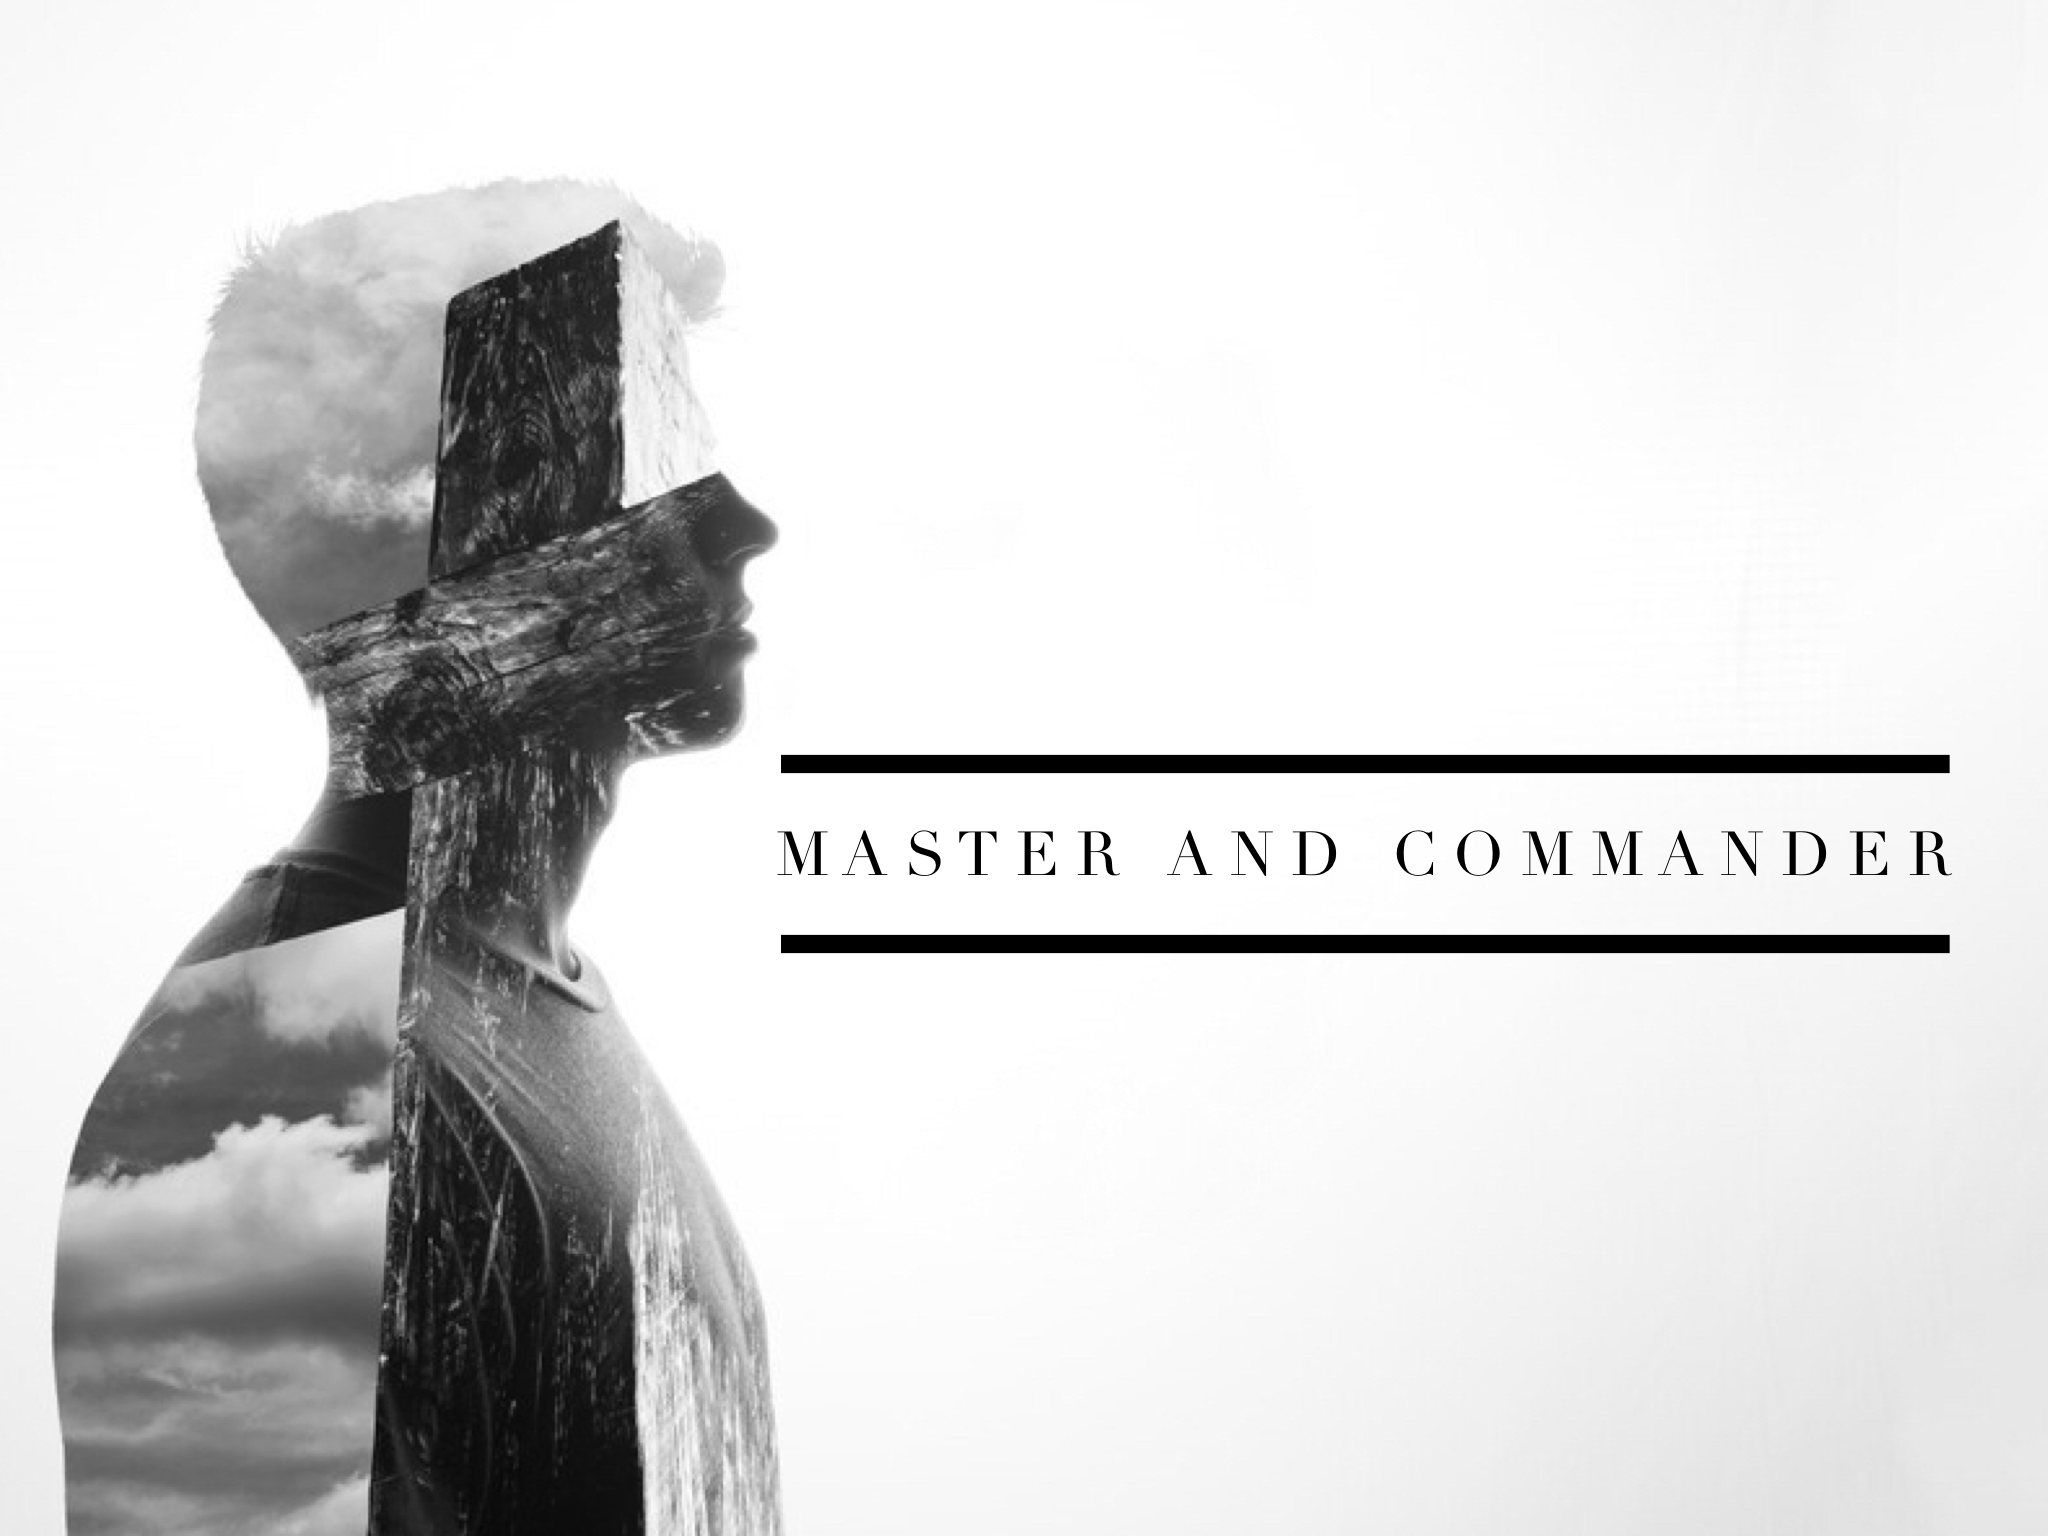 Three lessons from Luke 8 on how Jesus is truly the master over all.